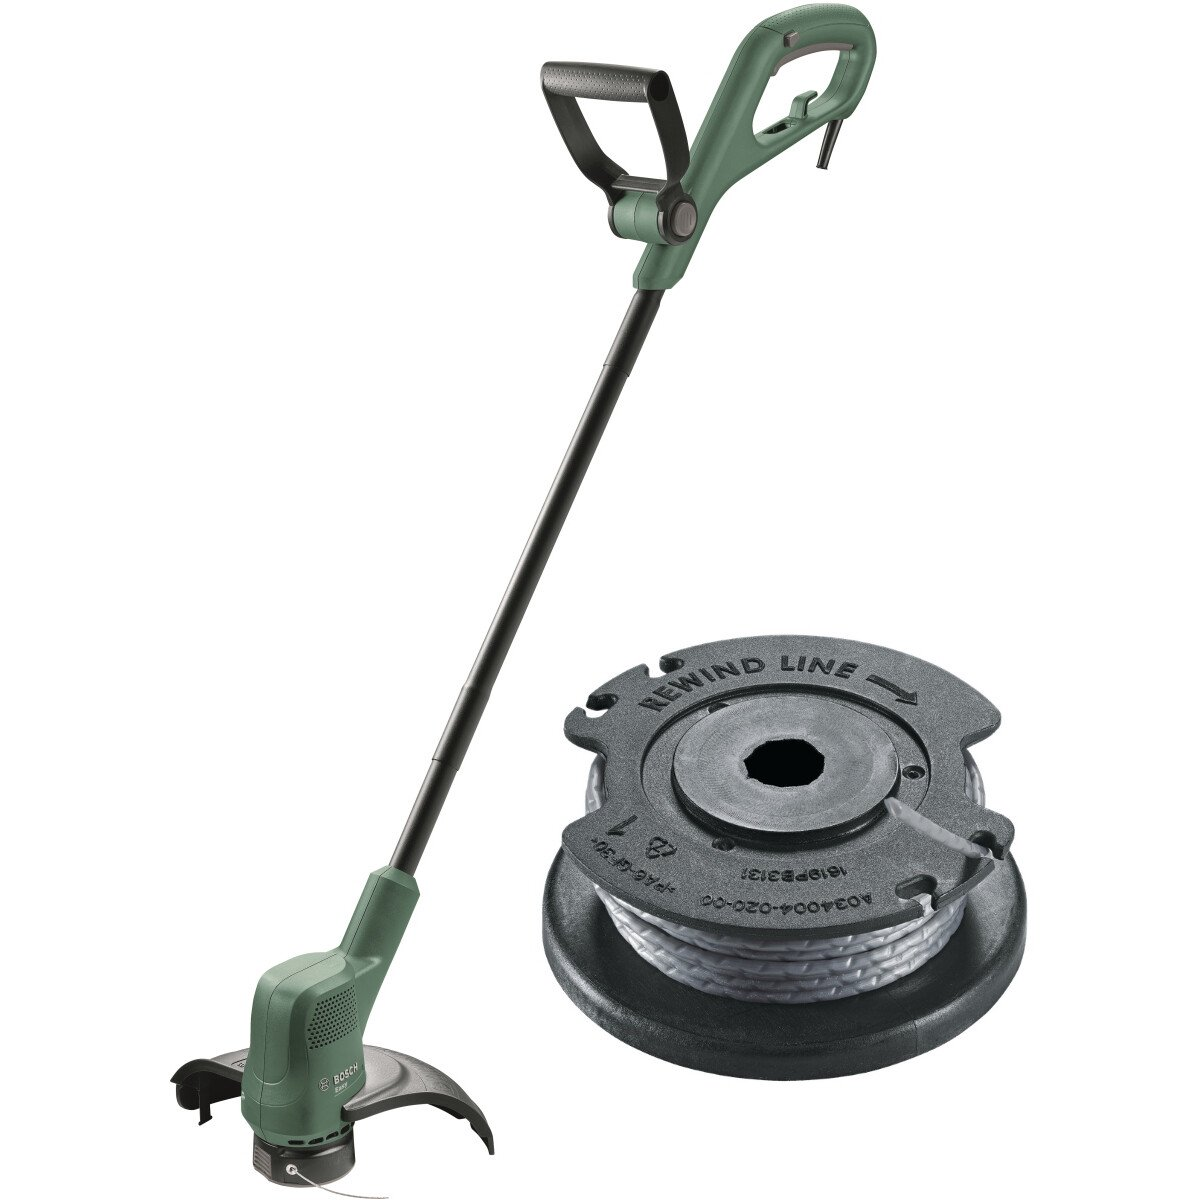 Bosch EasyGrassCut 23 with Spare Spool 23cm Grass Trimmer